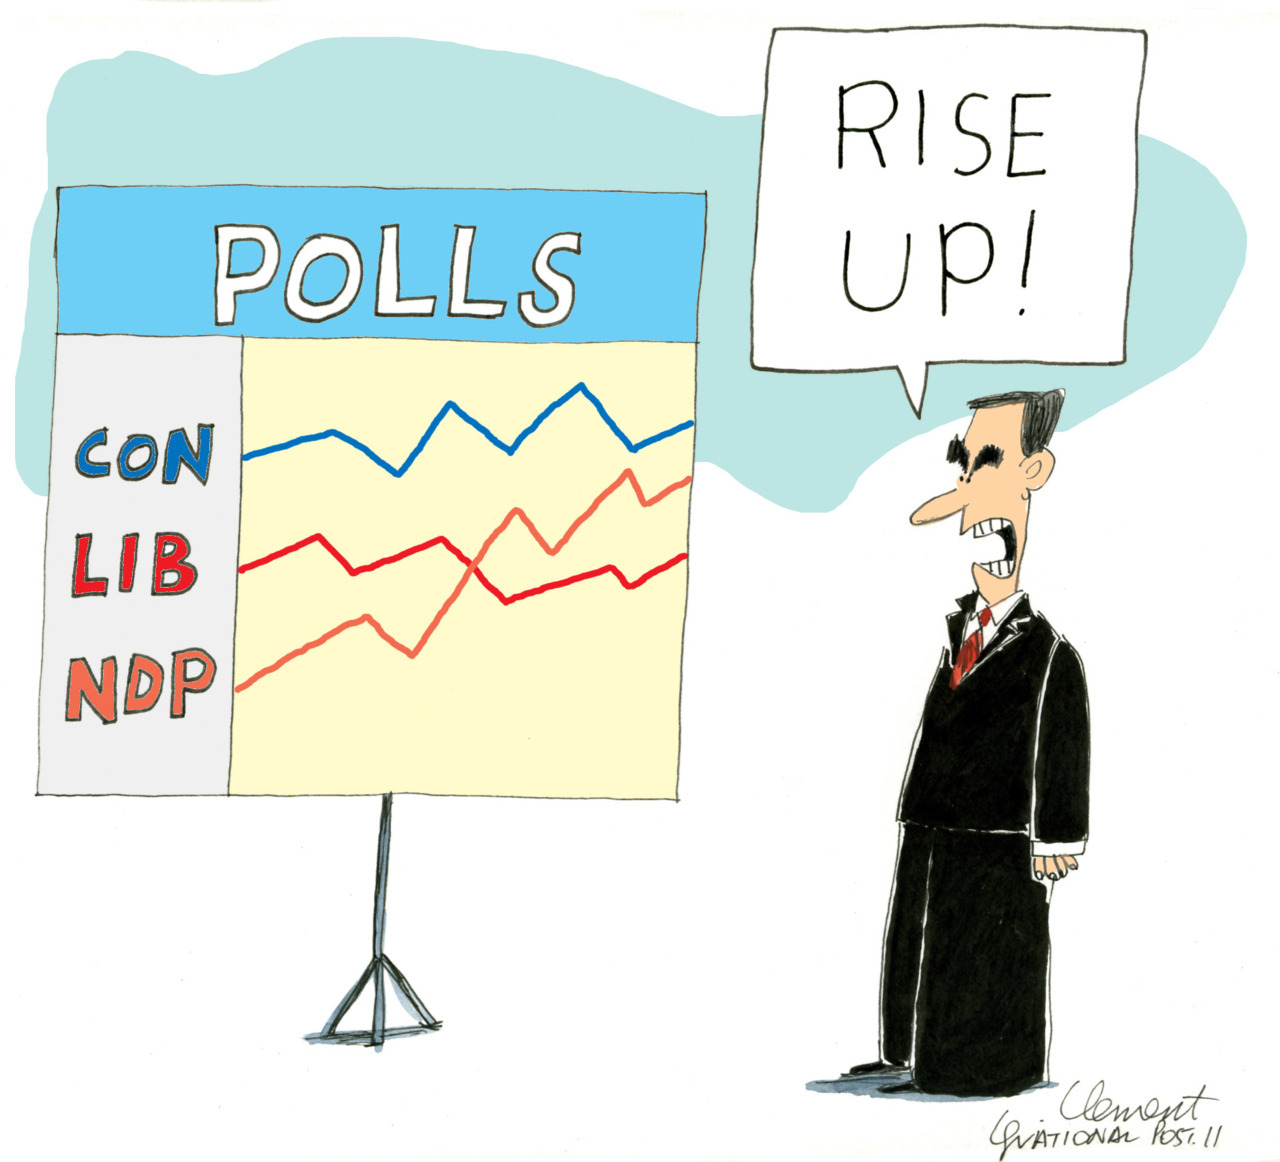 Scott Stinson: Liberals, NDP maybe not so compatible On Wednesday, Michael Ignatieff was again fending off coalition questions, but now the reporters want to know what he thinks of being the  junior partner in such an arrangement. It's a notion that Mr. Ignatieff would have been fair to equate with toads falling from the sky as recently as last weekend, but now several polls suggest he is staring such a possibility right in its ugly, pimpled kisser.Layton would make best PM, voters say Poll after poll Wednesday confirmed Jack Layton's NDP is in a solid second place, even as a new leadership survey suggests Canadians now feel he'd make the best prime minister of the pack.NDP surge means some unlikely candidates have a shot at Parliament As long as the NDP has existed, its candidates in Quebec have run secure in the knowledge they would not be moving to Ottawa after election day. Only two New Democrats from the province have ever won office. But now, as opinion polls show the party leading in the province, its slate of 75 largely unknown faces is coming under unprecedented scrutiny, with sometimes surprising results.